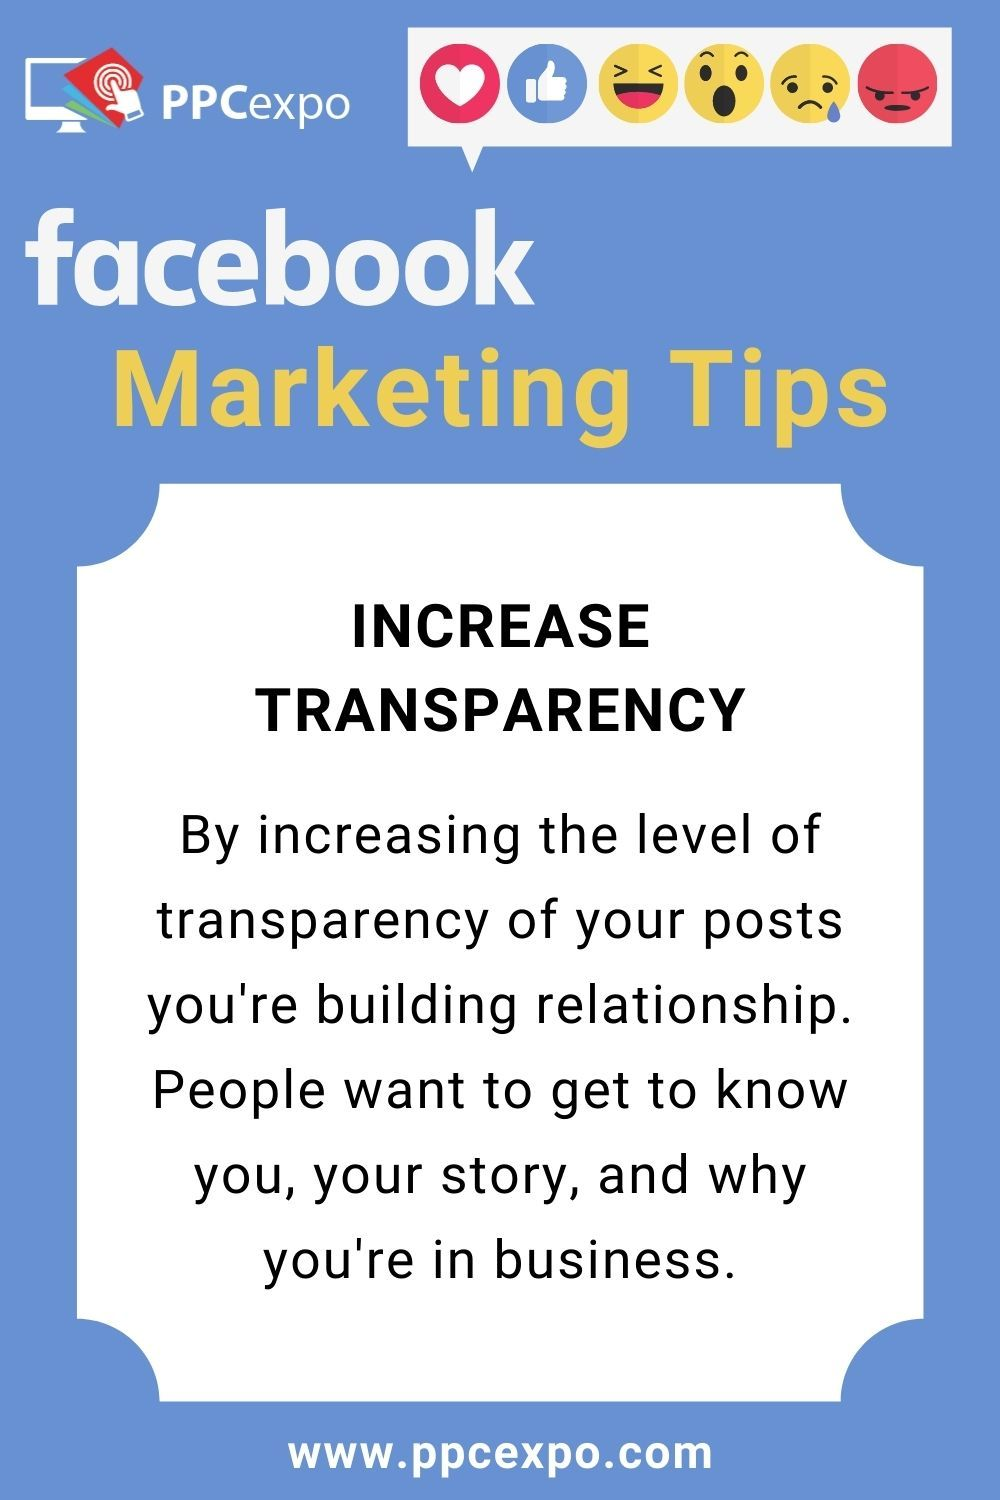 b682cc7f6d75120208c1f17ddc46d5ee - How To Get People To Your Facebook Business Page